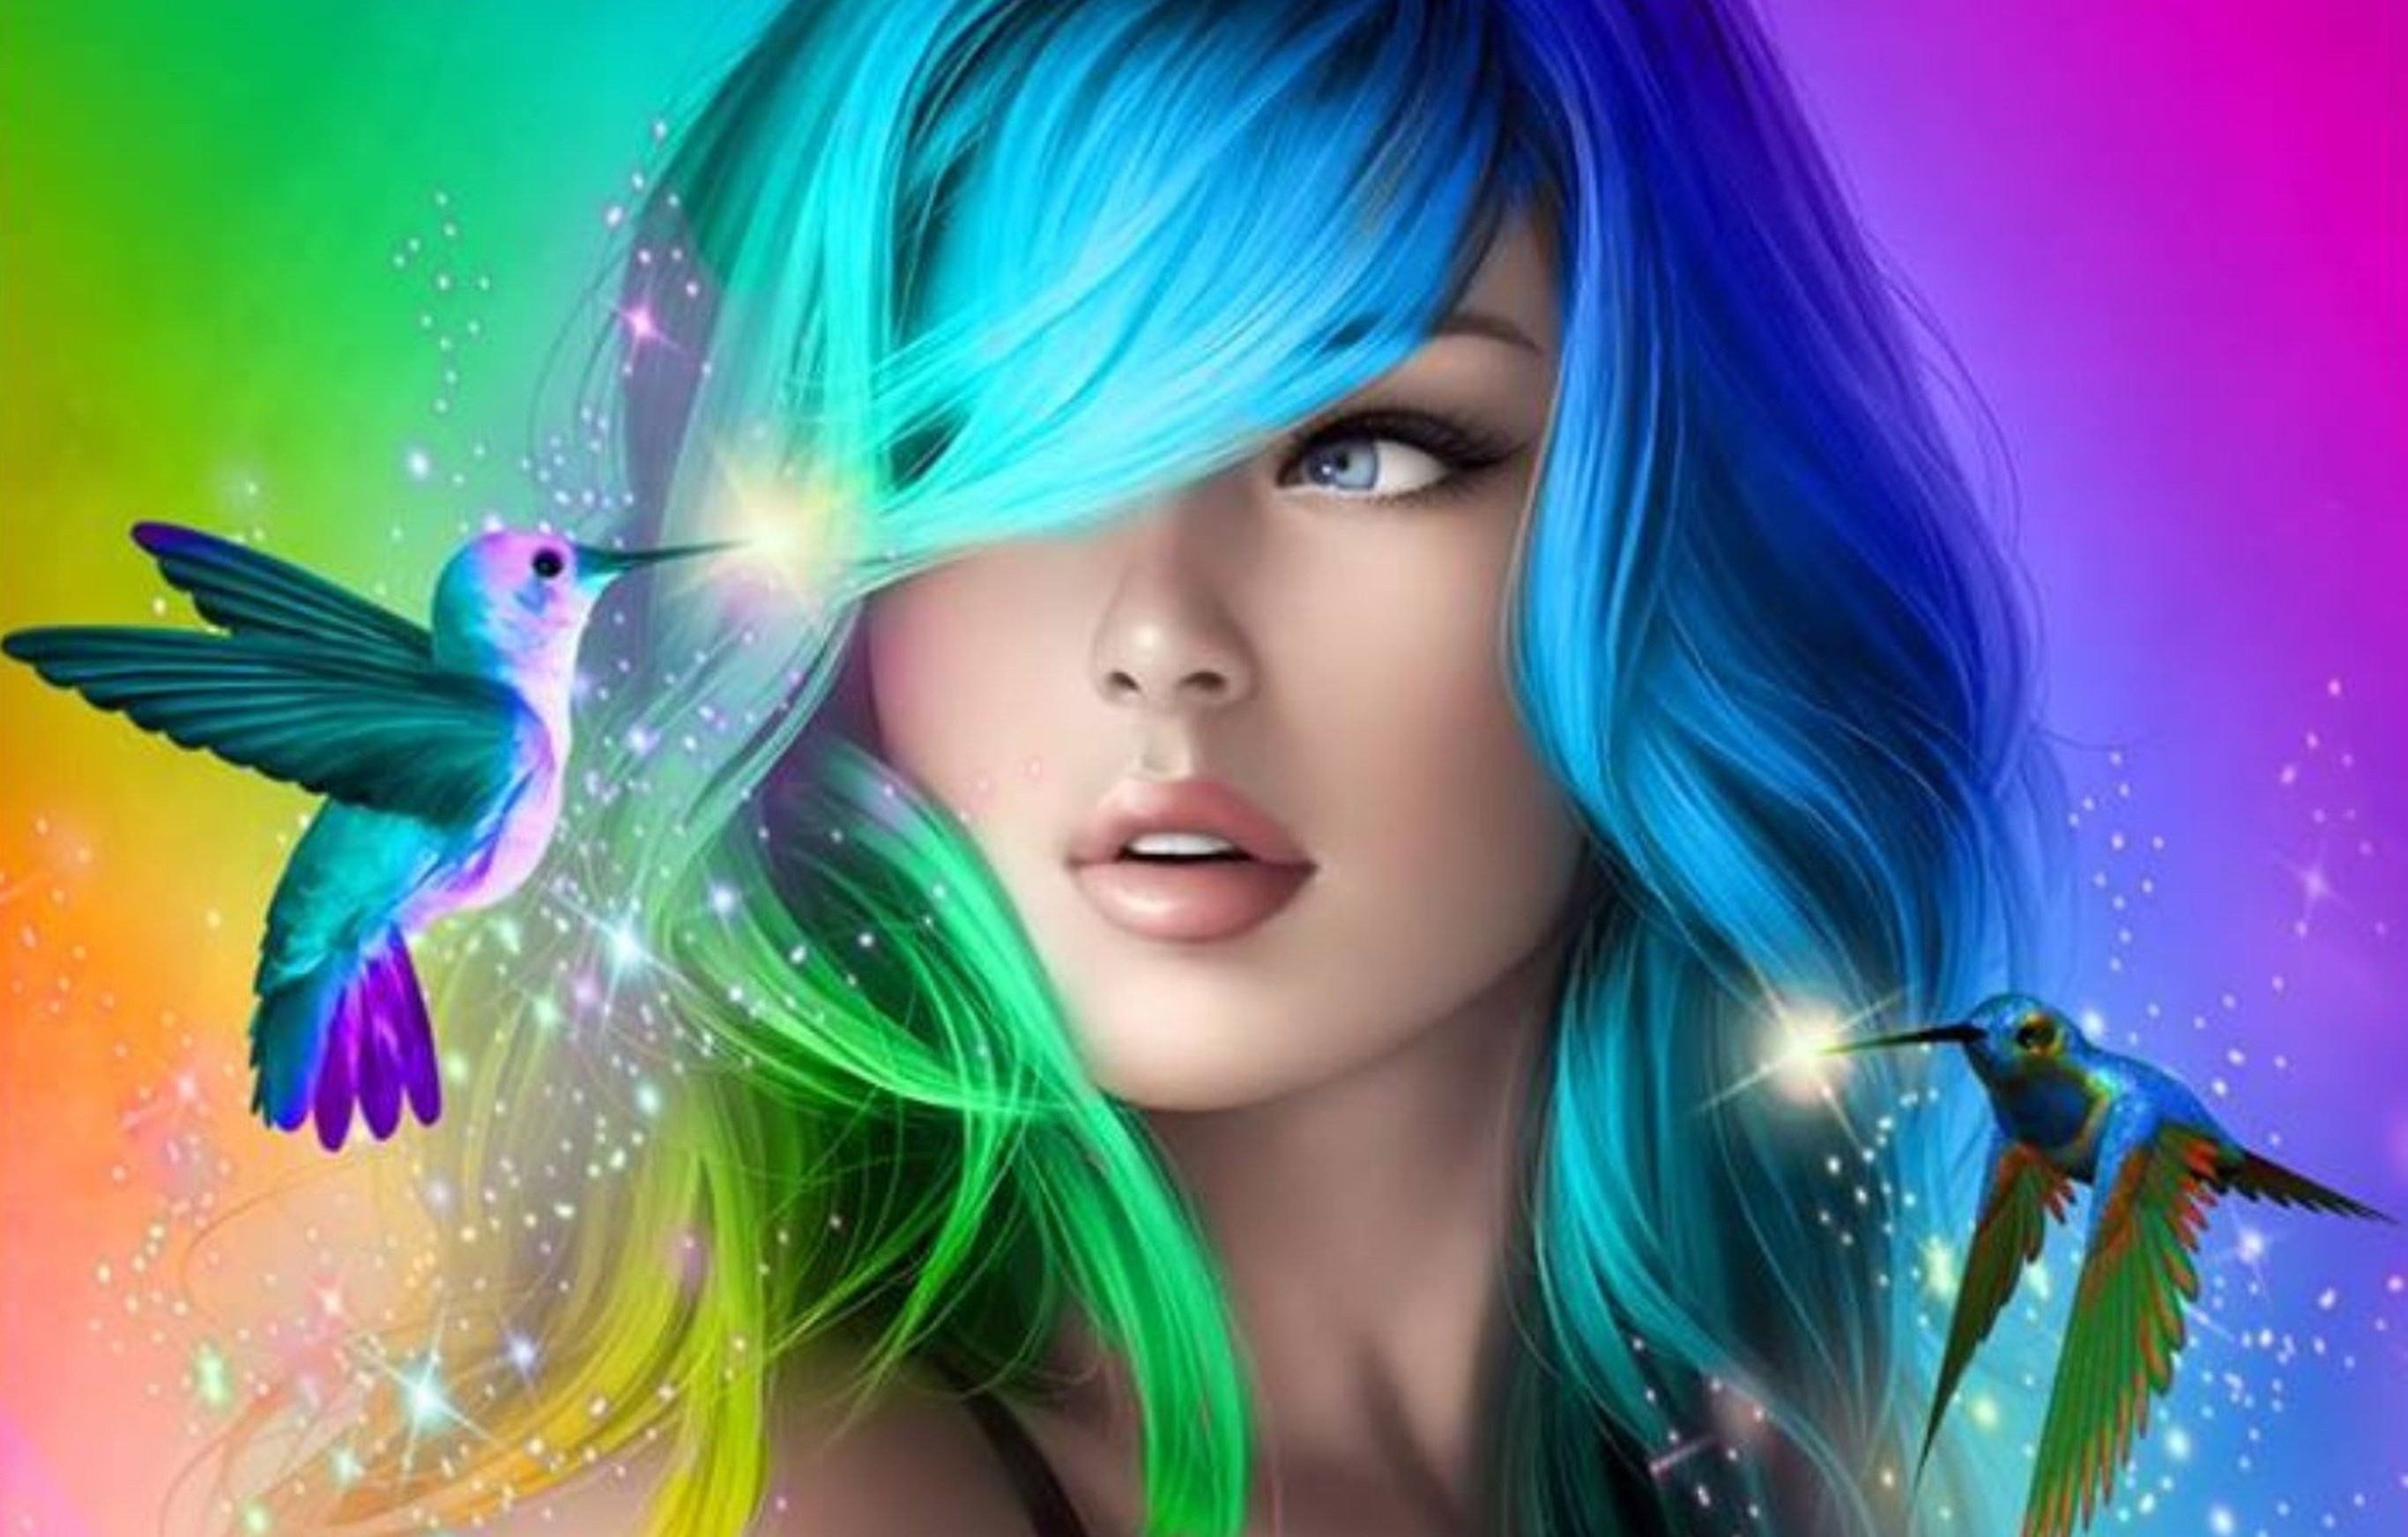 Face beautiful woman fantasy girl pictures.